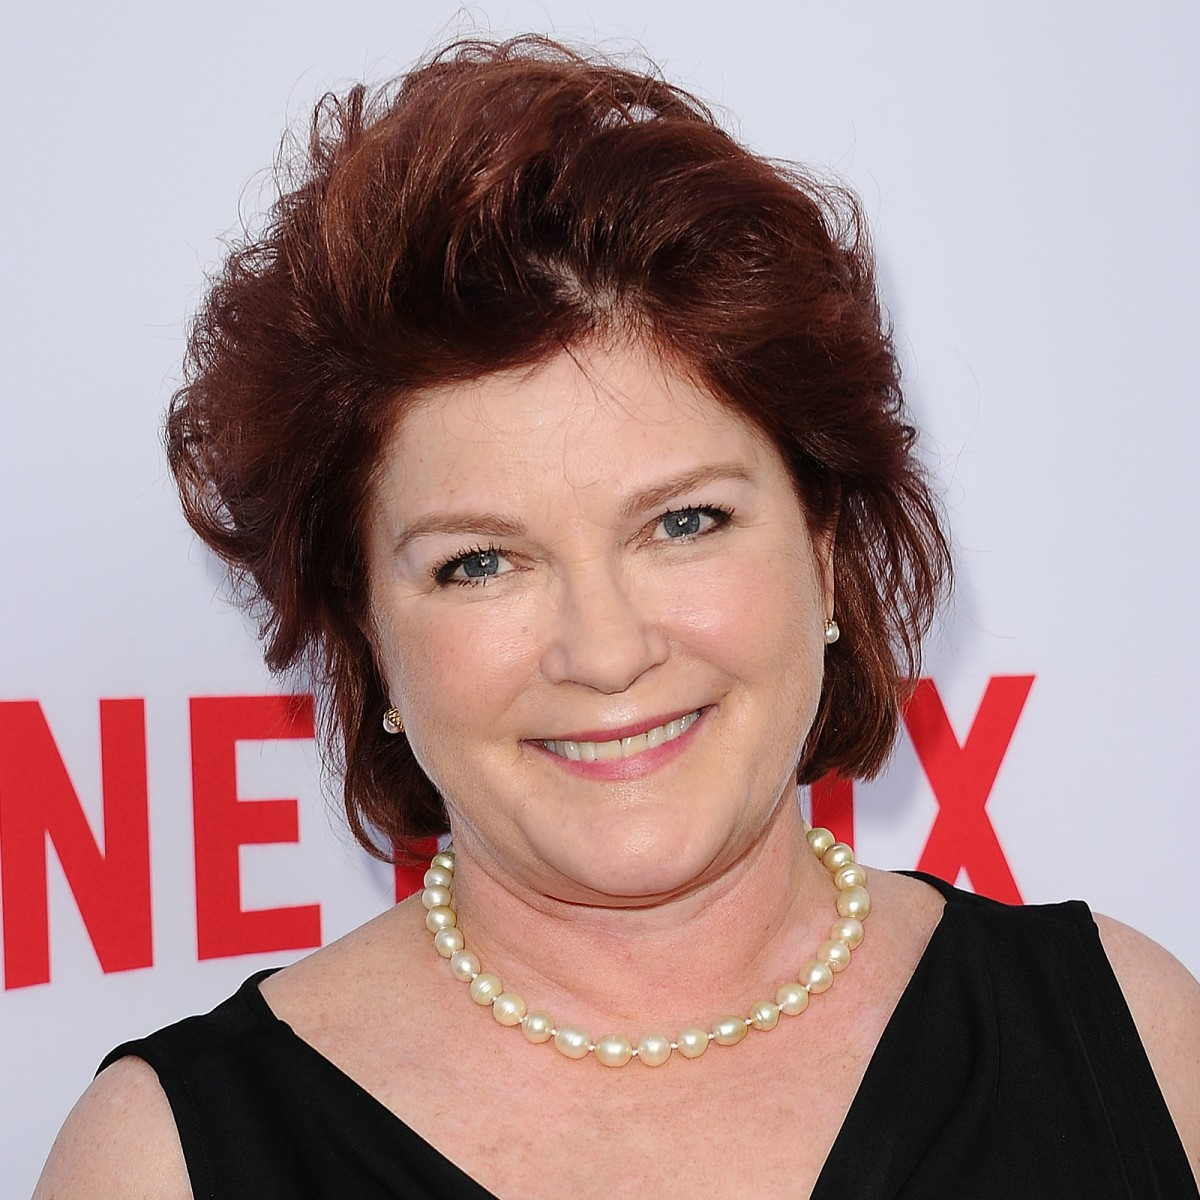 kate-mulgrew-gettyimages-450213022_1600jpg.jpg